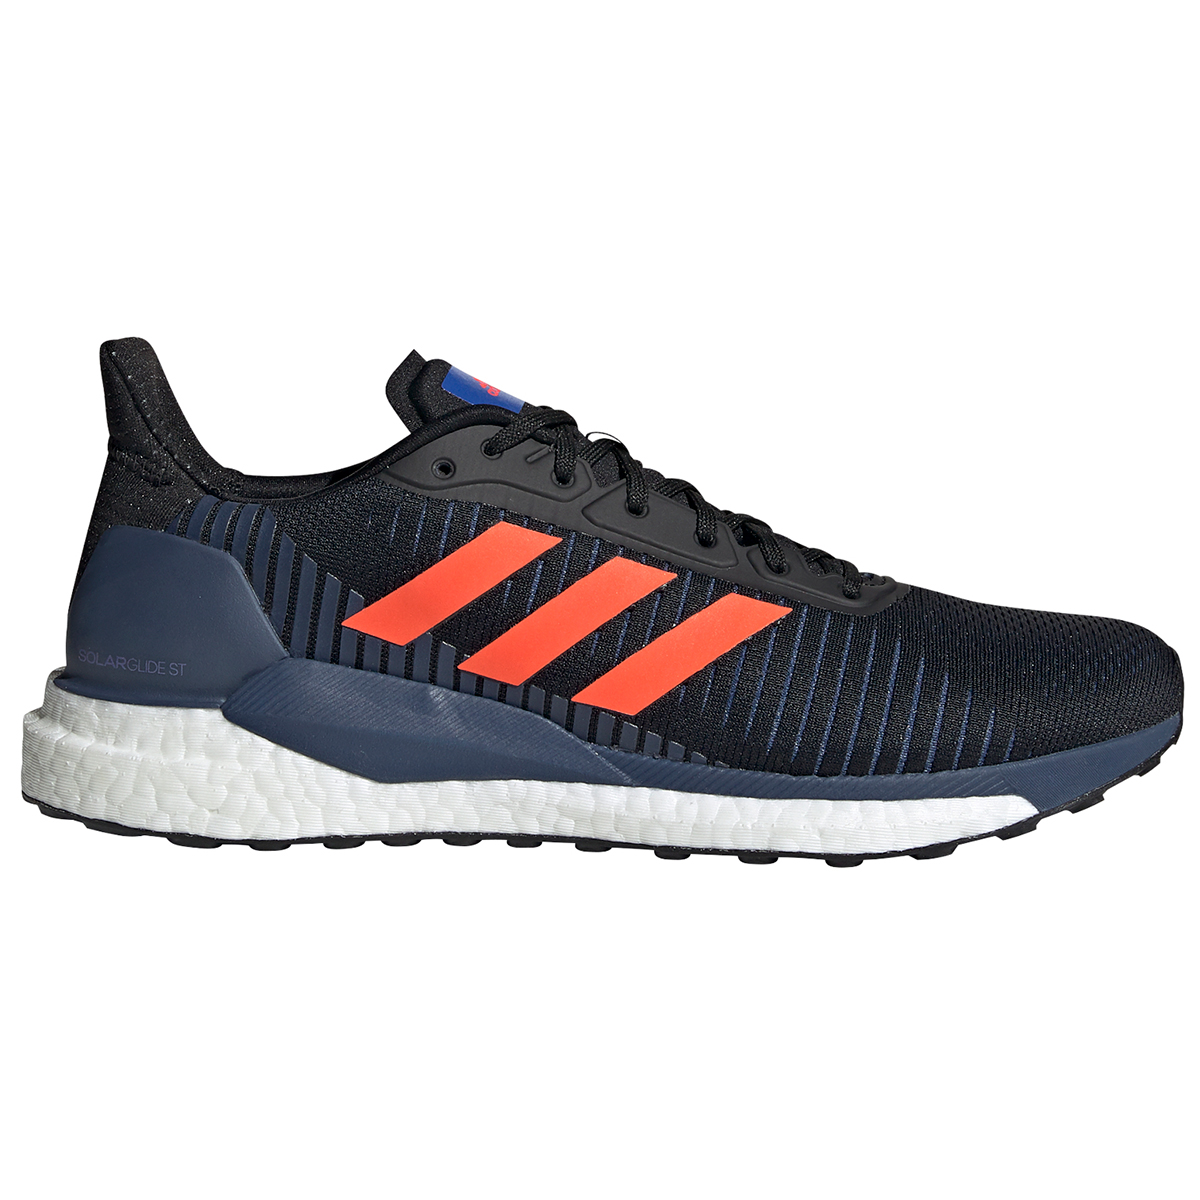 Adidas Men's Solar Glide St 19 Running Shoe - Black, 10